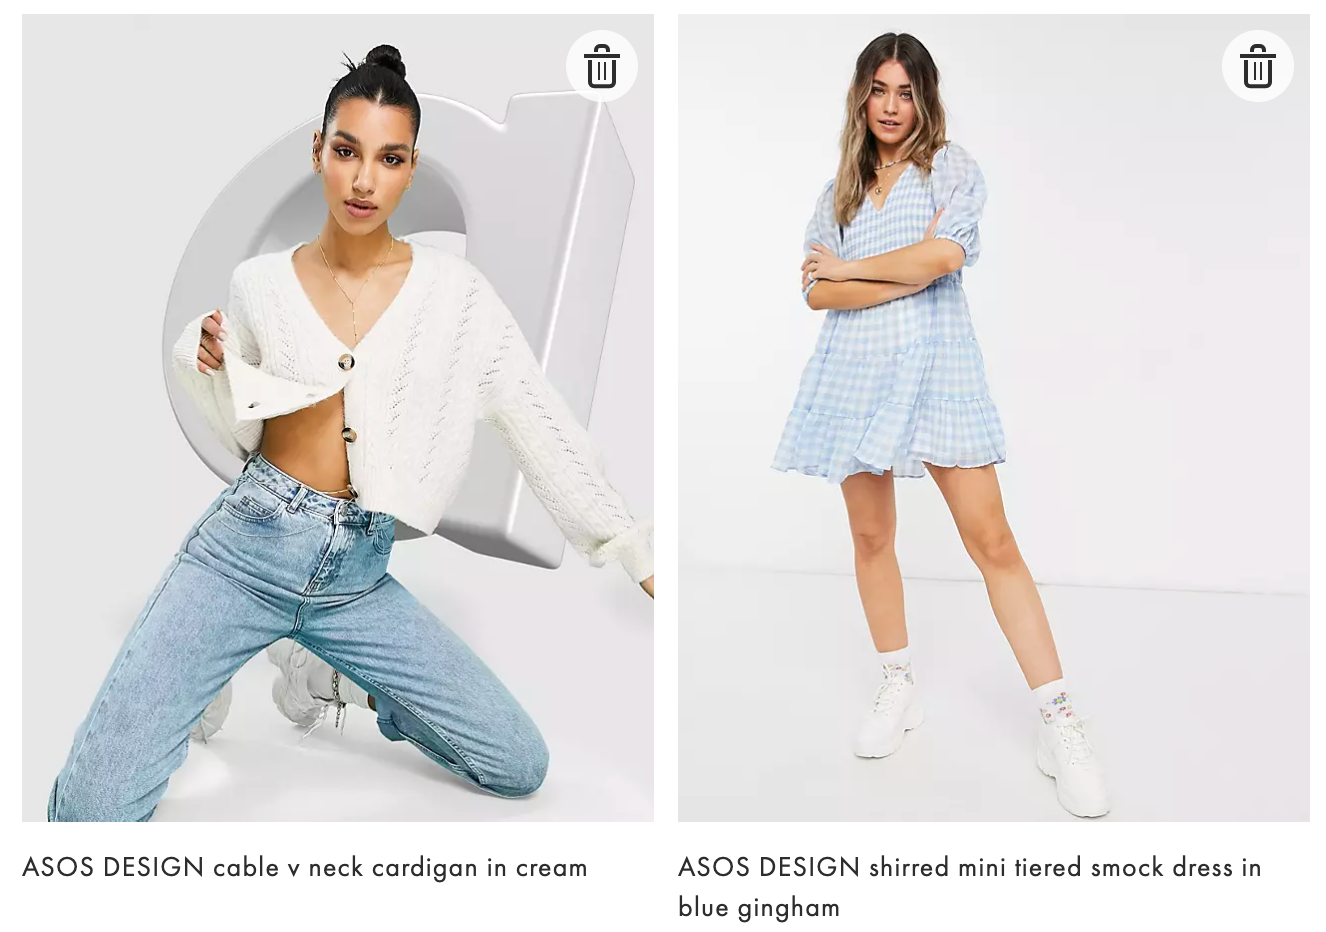 ASOS DESIGN cable v neck cardigan in cream ASOS DESIGN shirred mini tiered smock dress in blue gingham